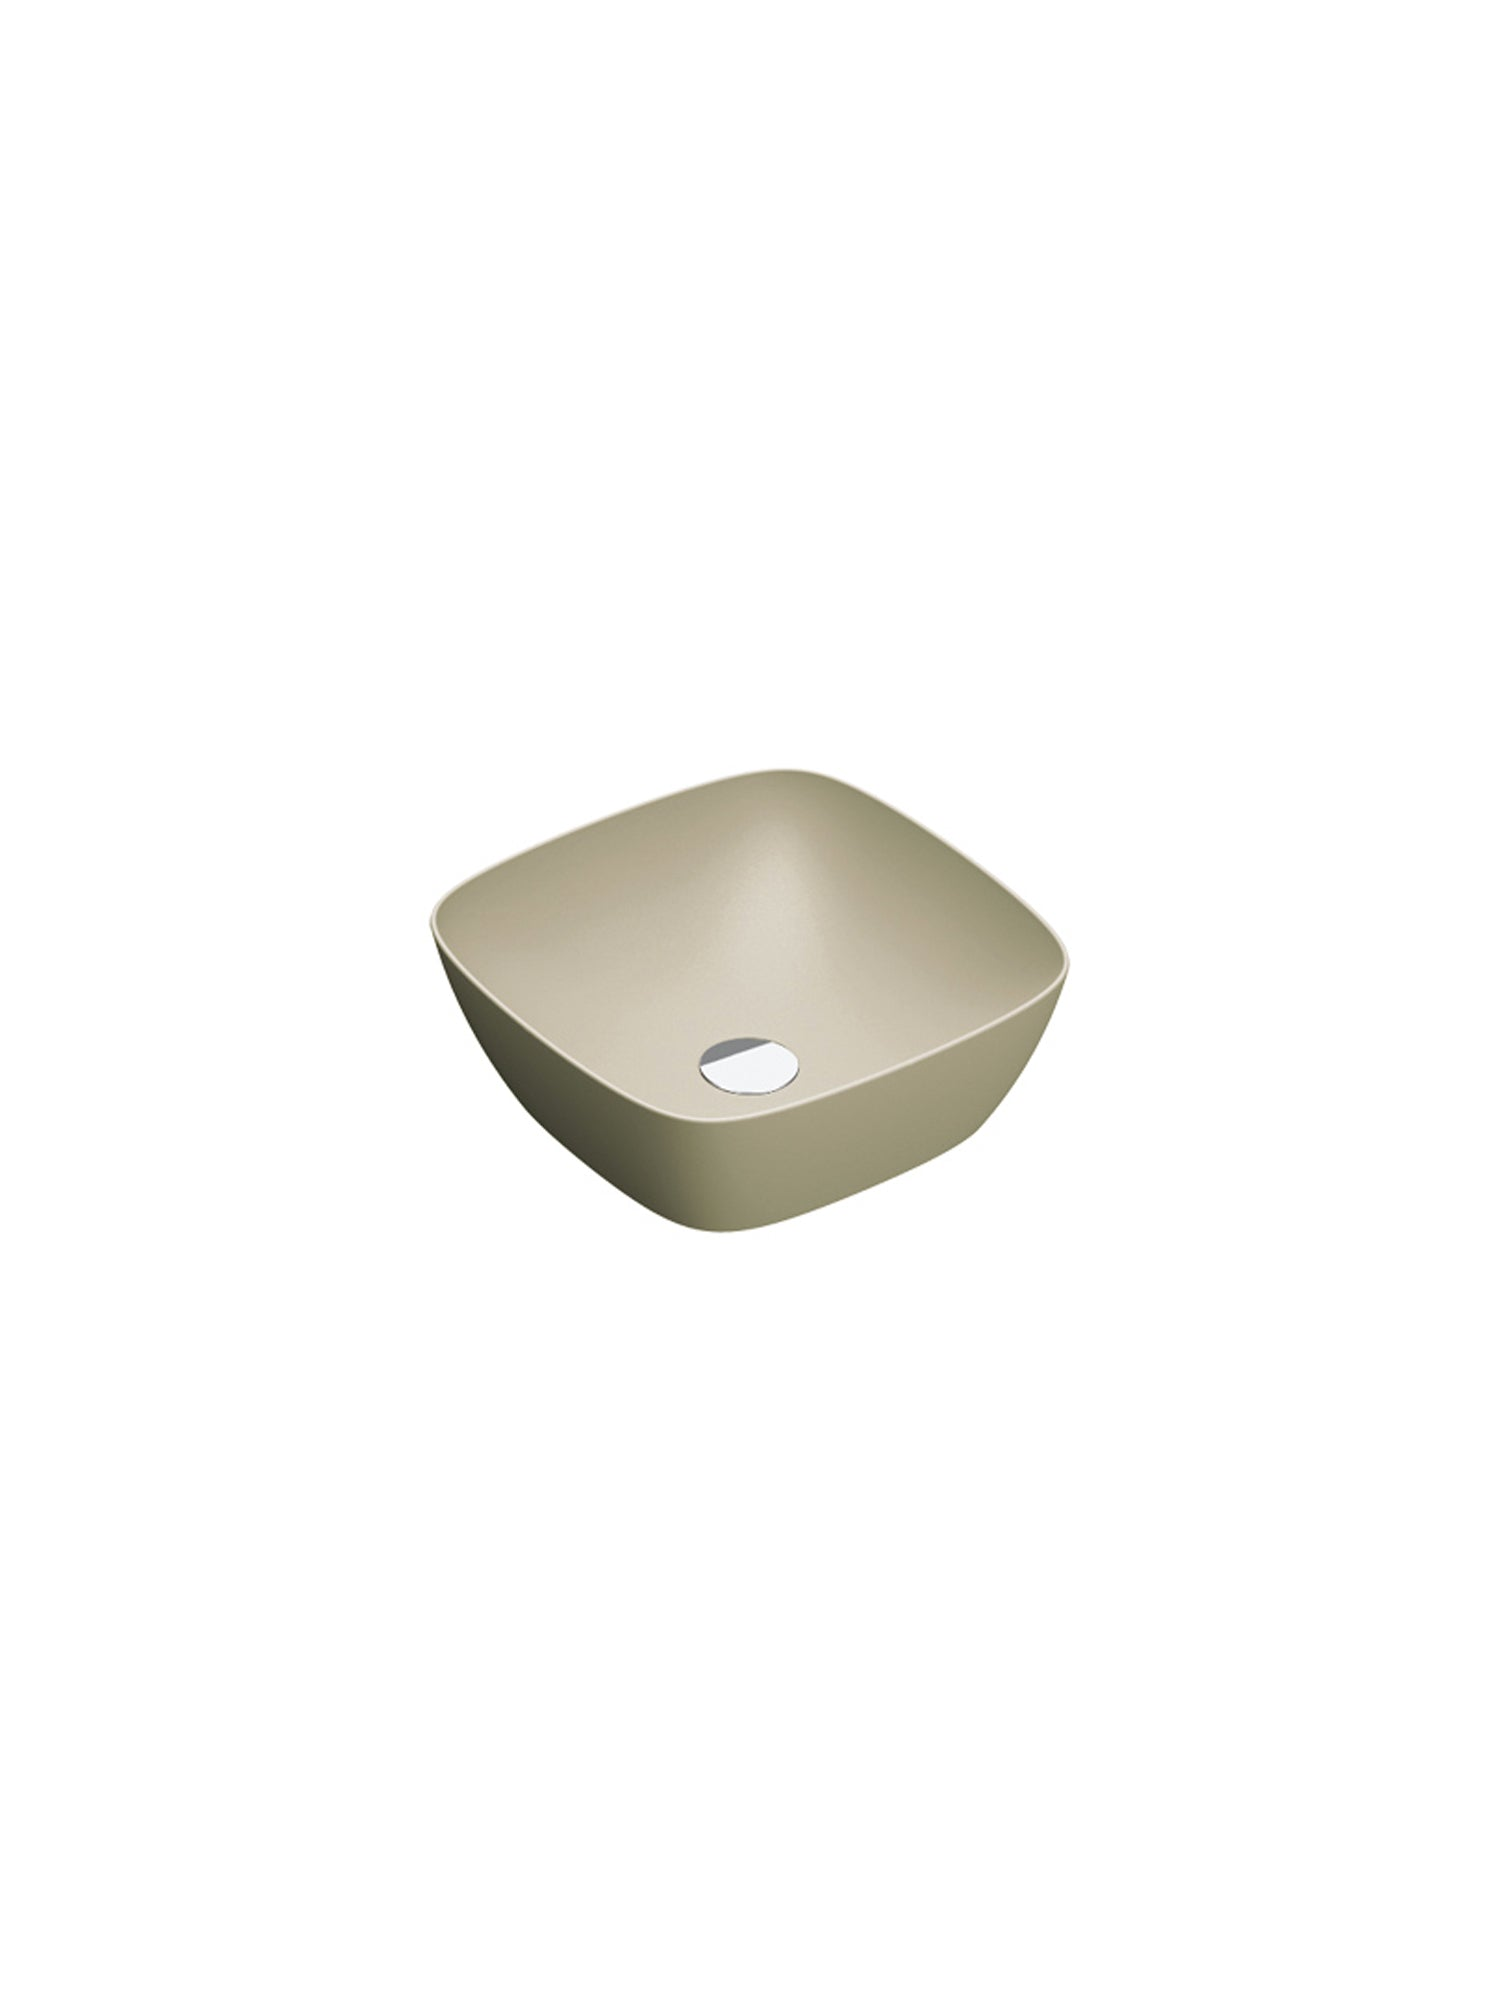 Green Lux Colori Countertop Basin 400X400 (Avail. in 7 Colour Tones)